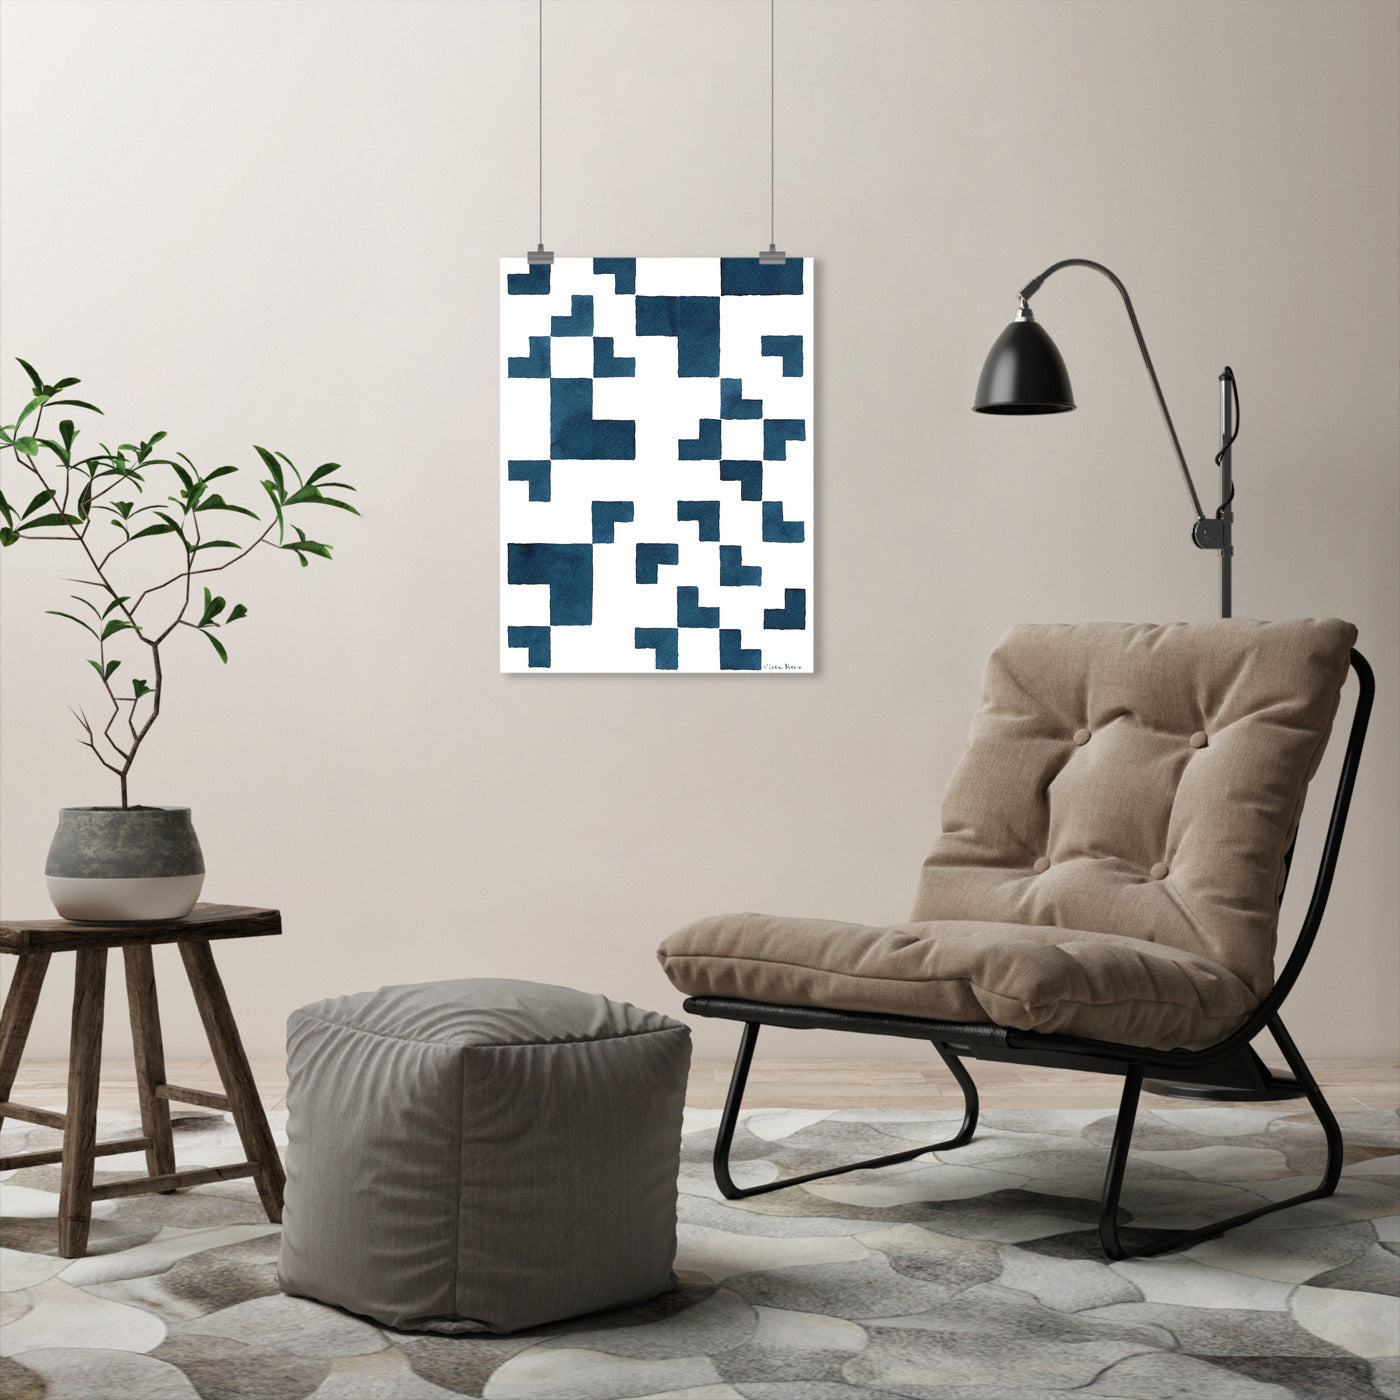 Tiles by Dreamy Me - Art Print - Americanflat